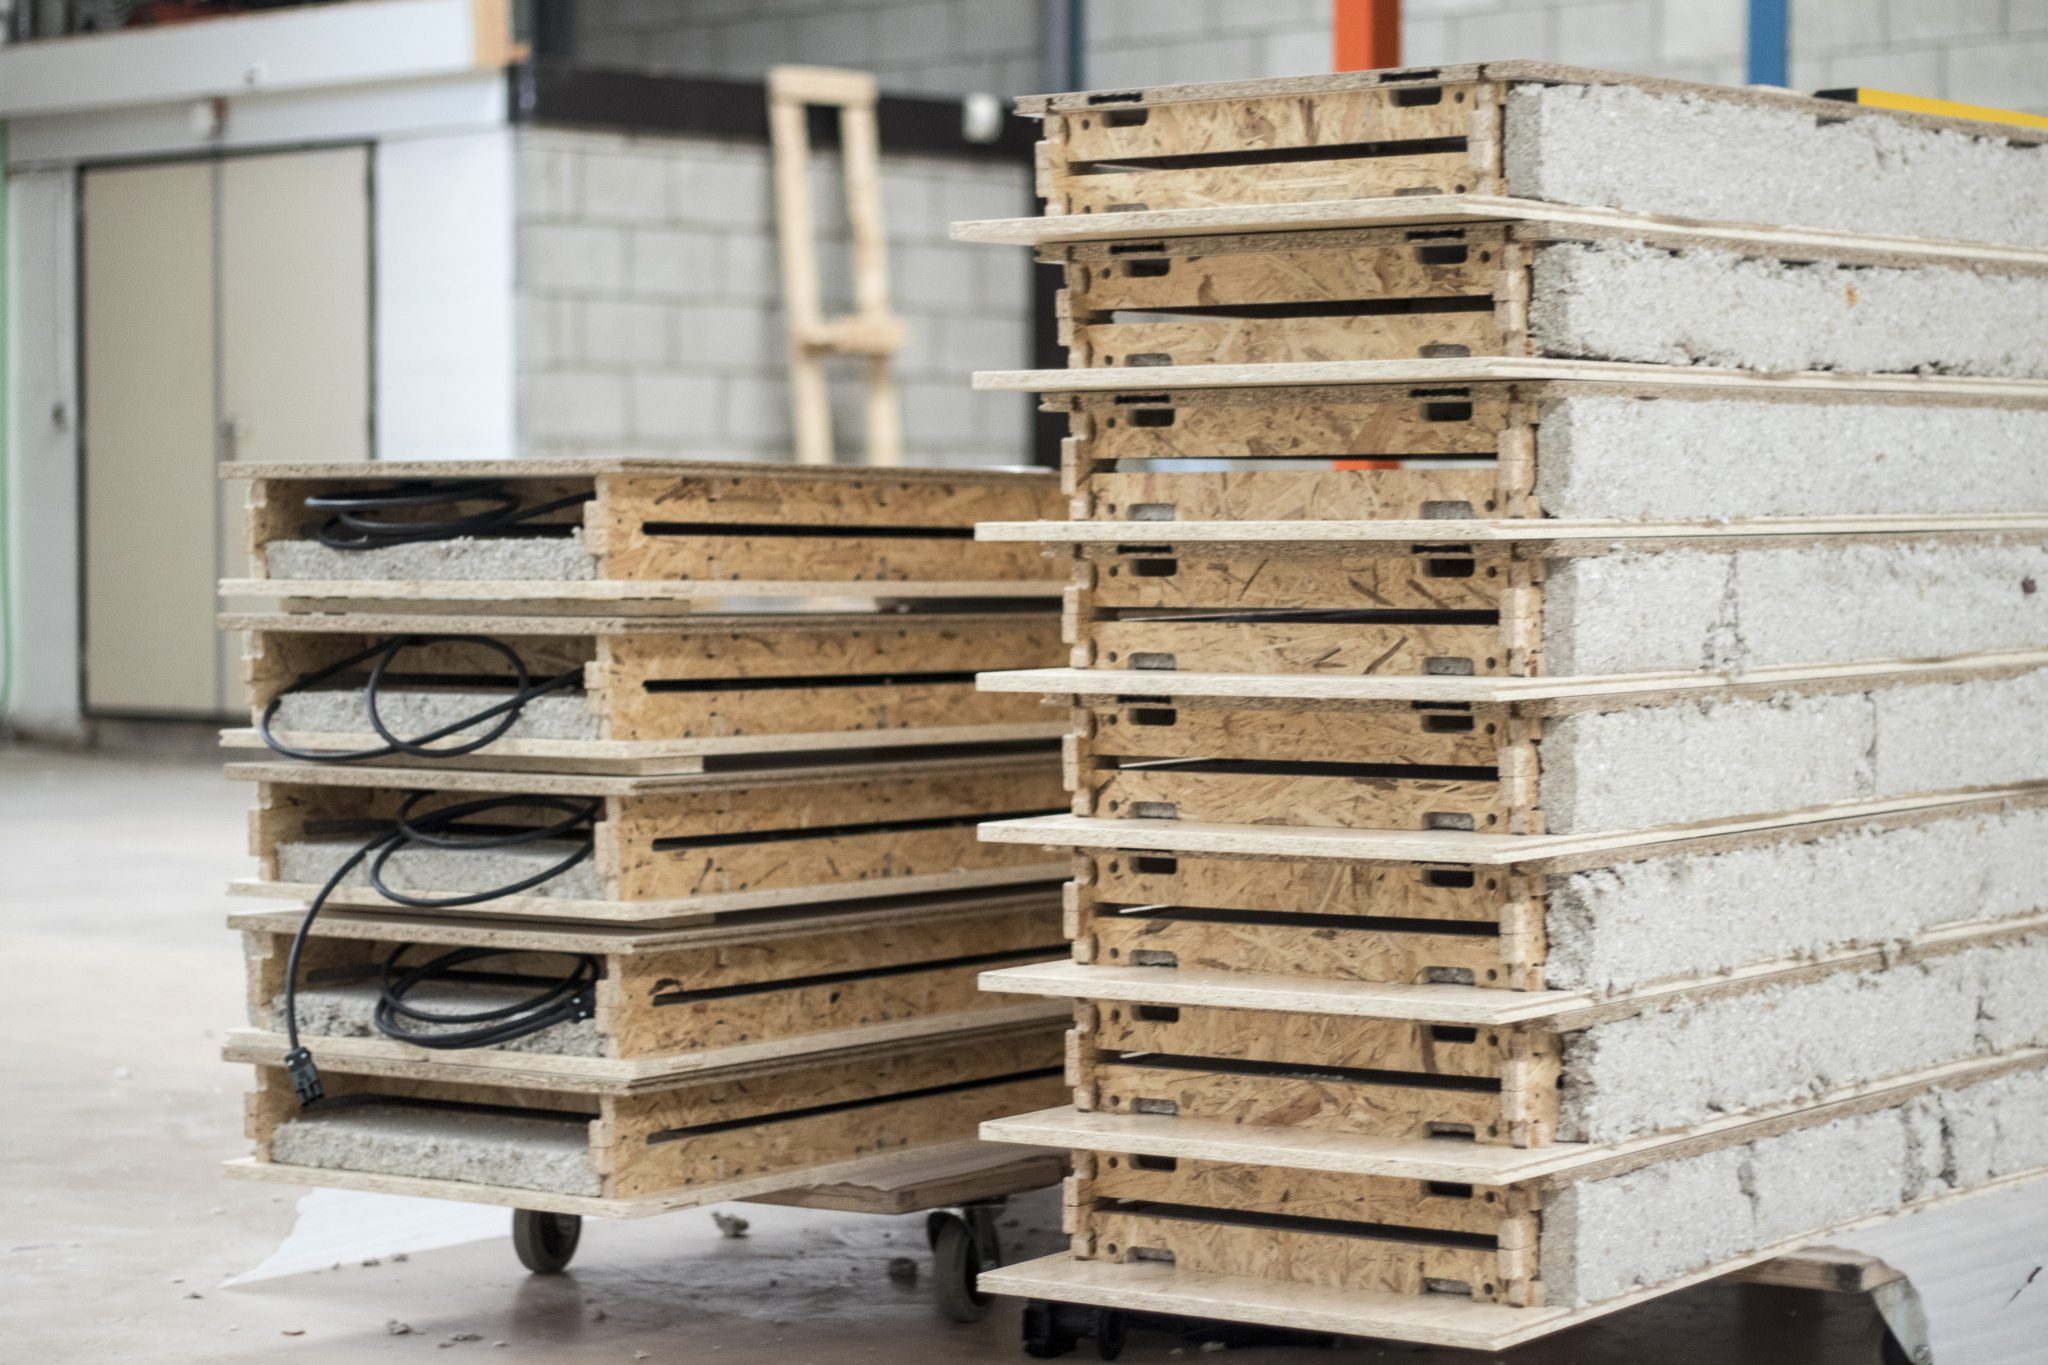 Our building blocks are made in series and stacked efficiently.